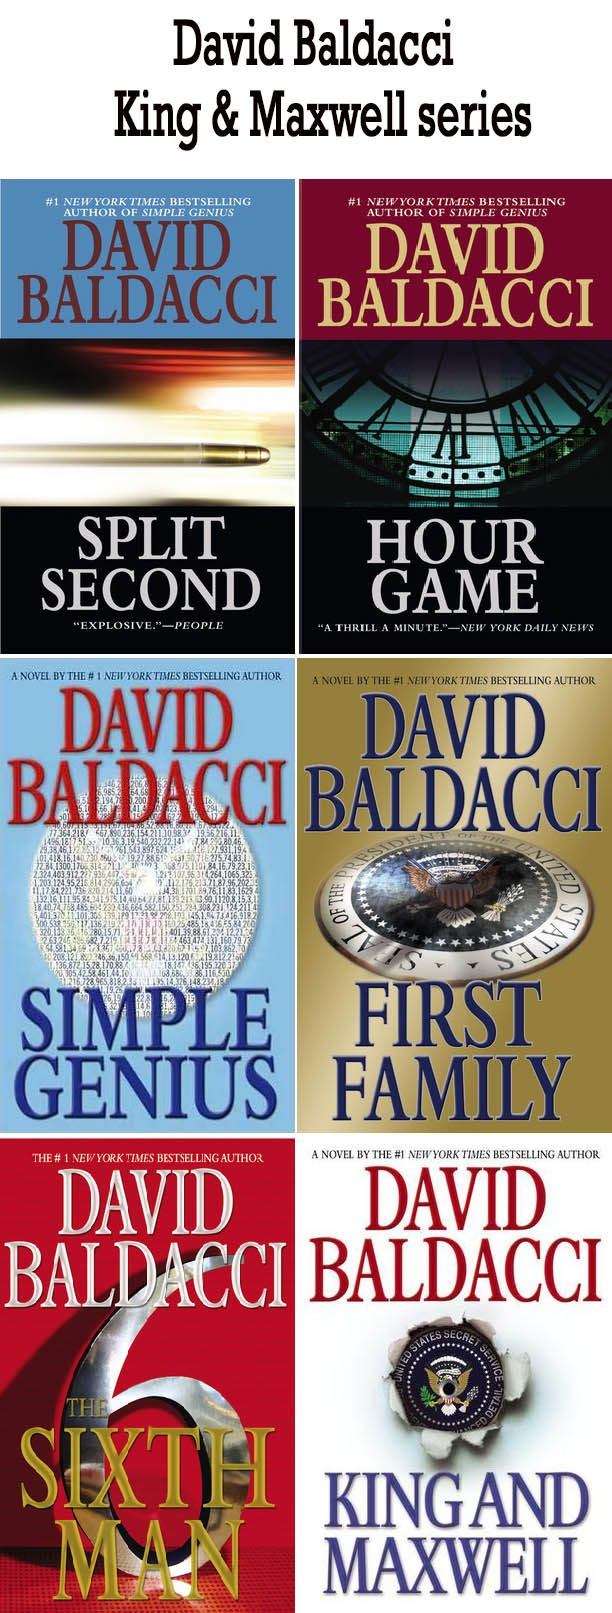 David Baldacci books King & Maxwell series  http://www.mysterysequels.com/david-baldacci-books-in-order